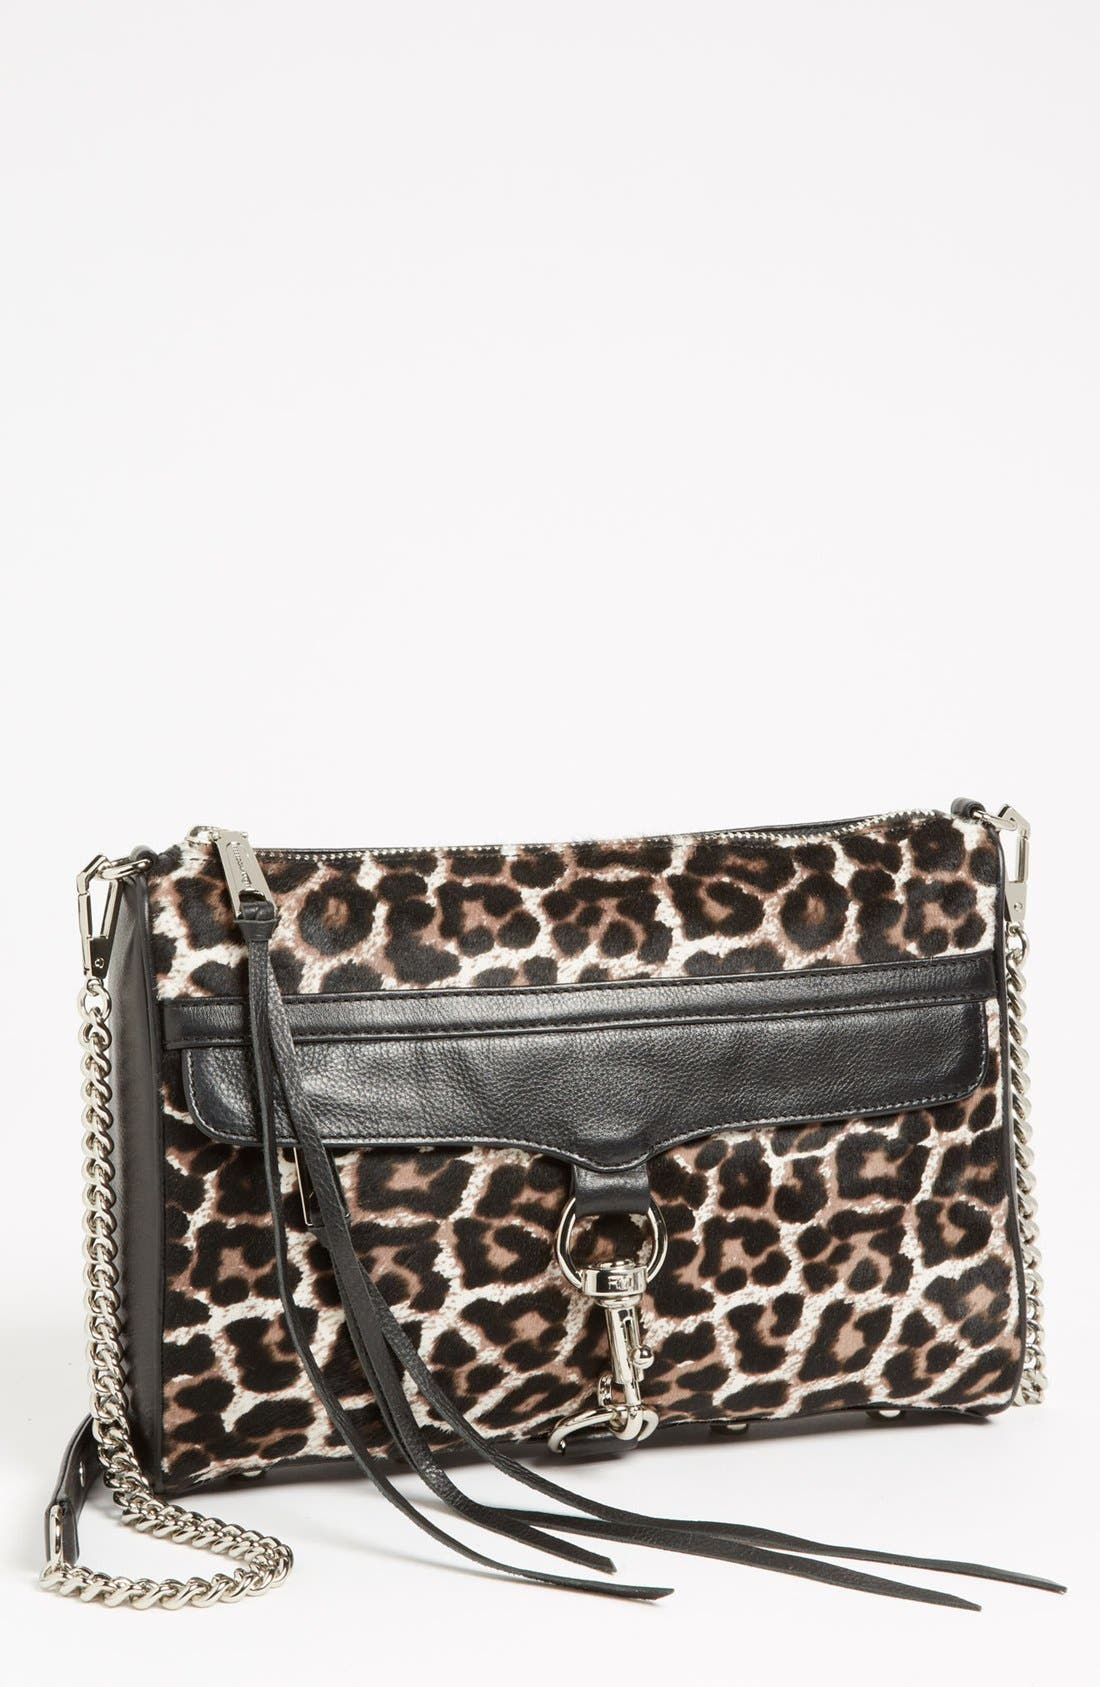 Main Image - Rebecca Minkoff 'MAC Clutch' Calf Hair Crossbody Bag, Small